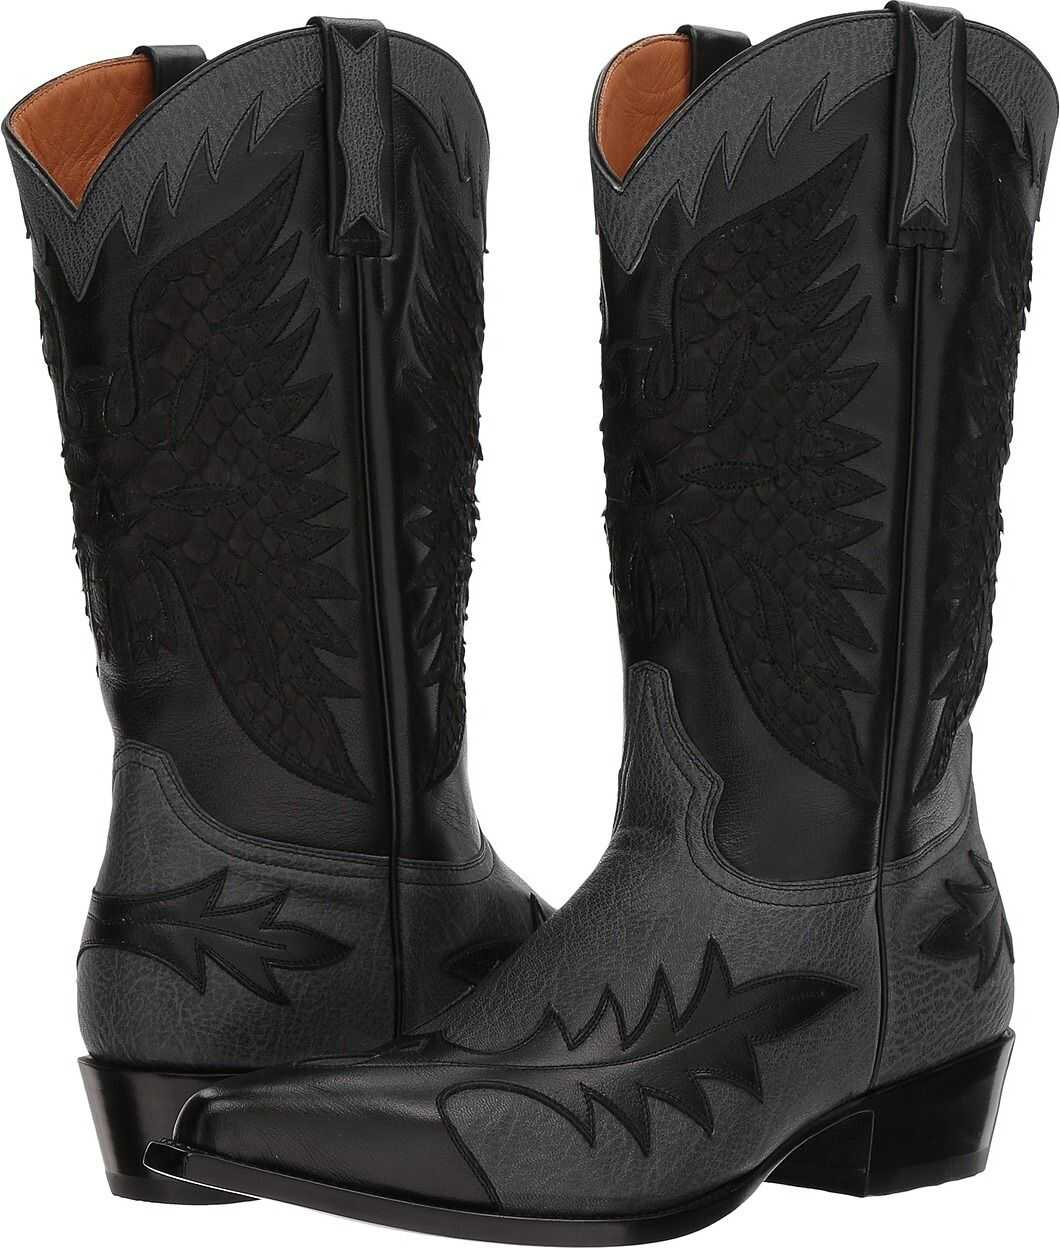 Frye Flint Firebird Tall Black Multi